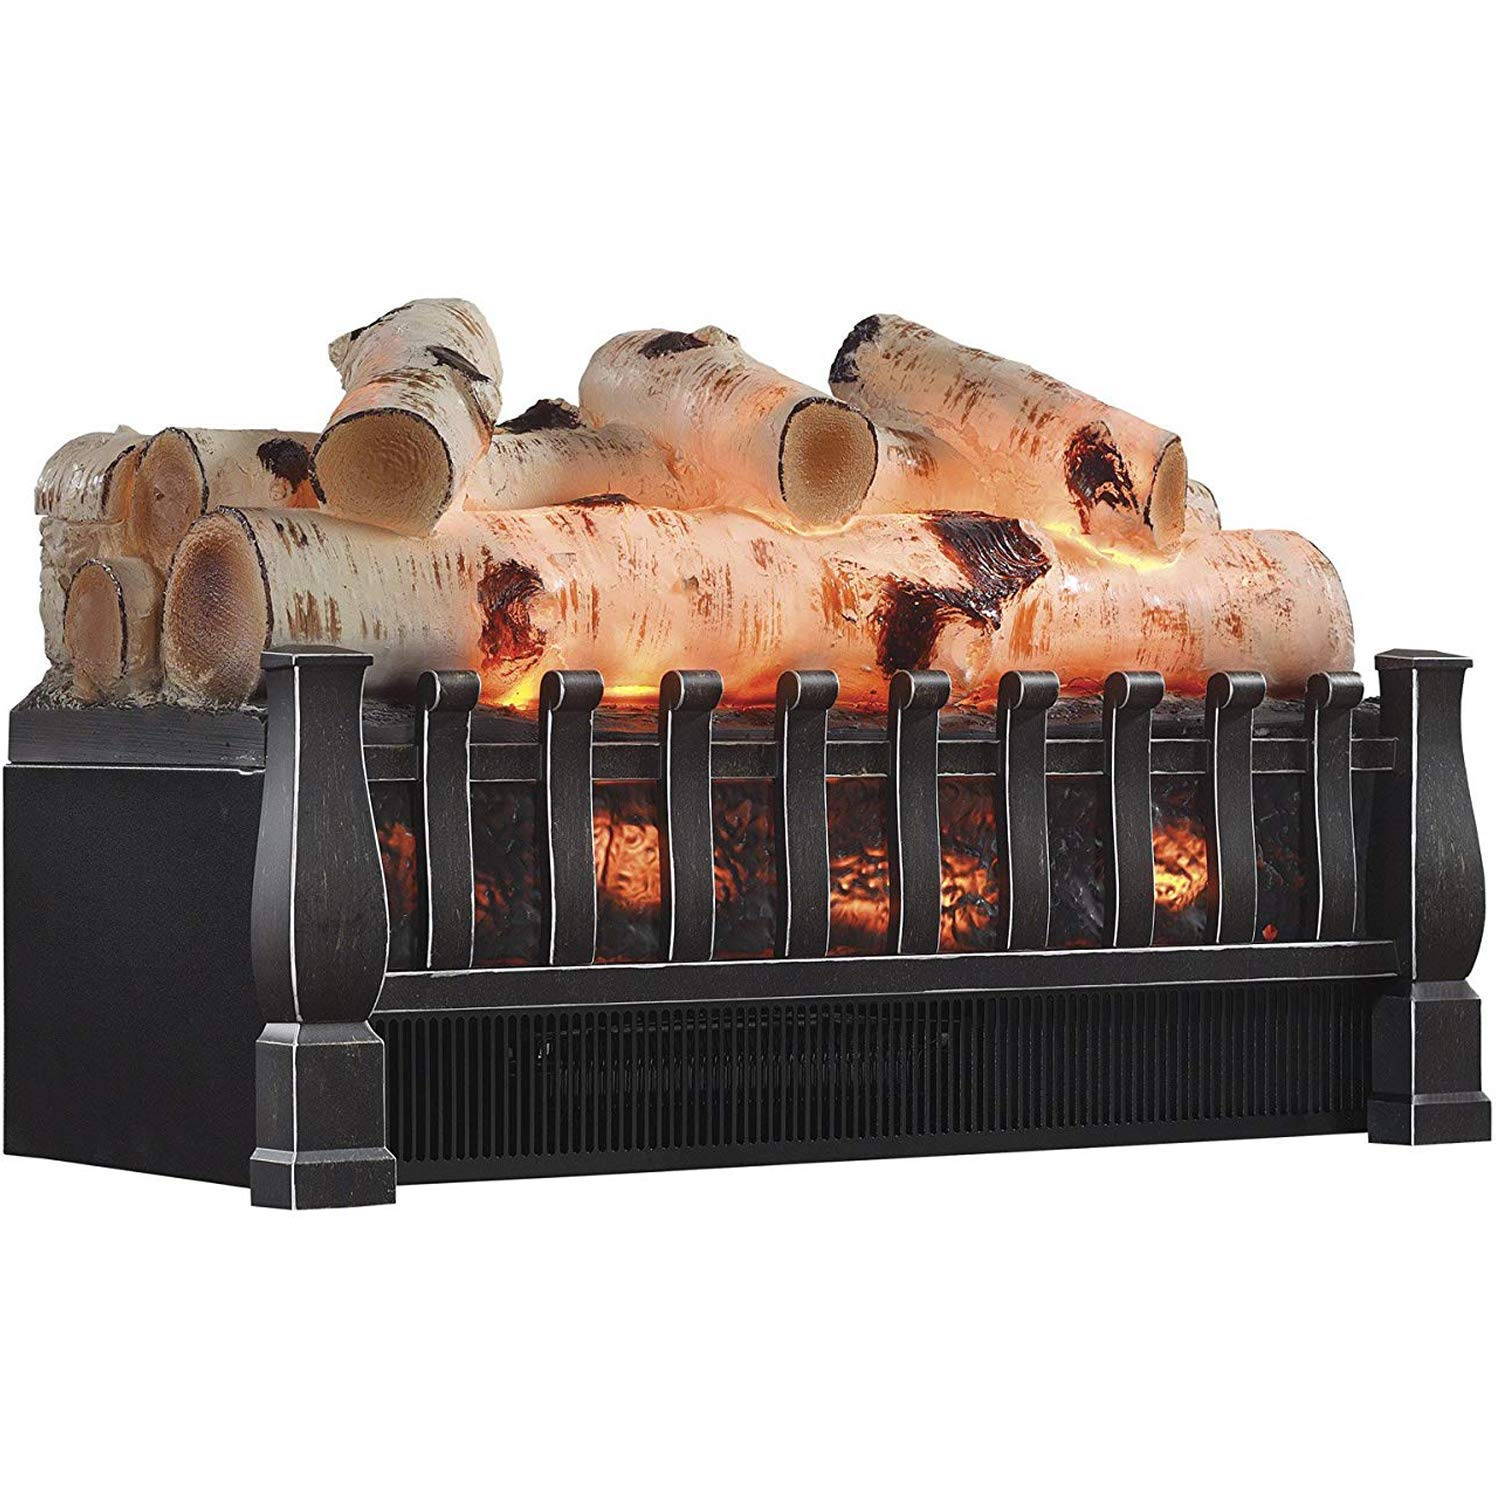 Regal Flame 20 Inch Electric Fireplace Log Realistic Ember Bed Insert with Heater in Birch by Regal Flame